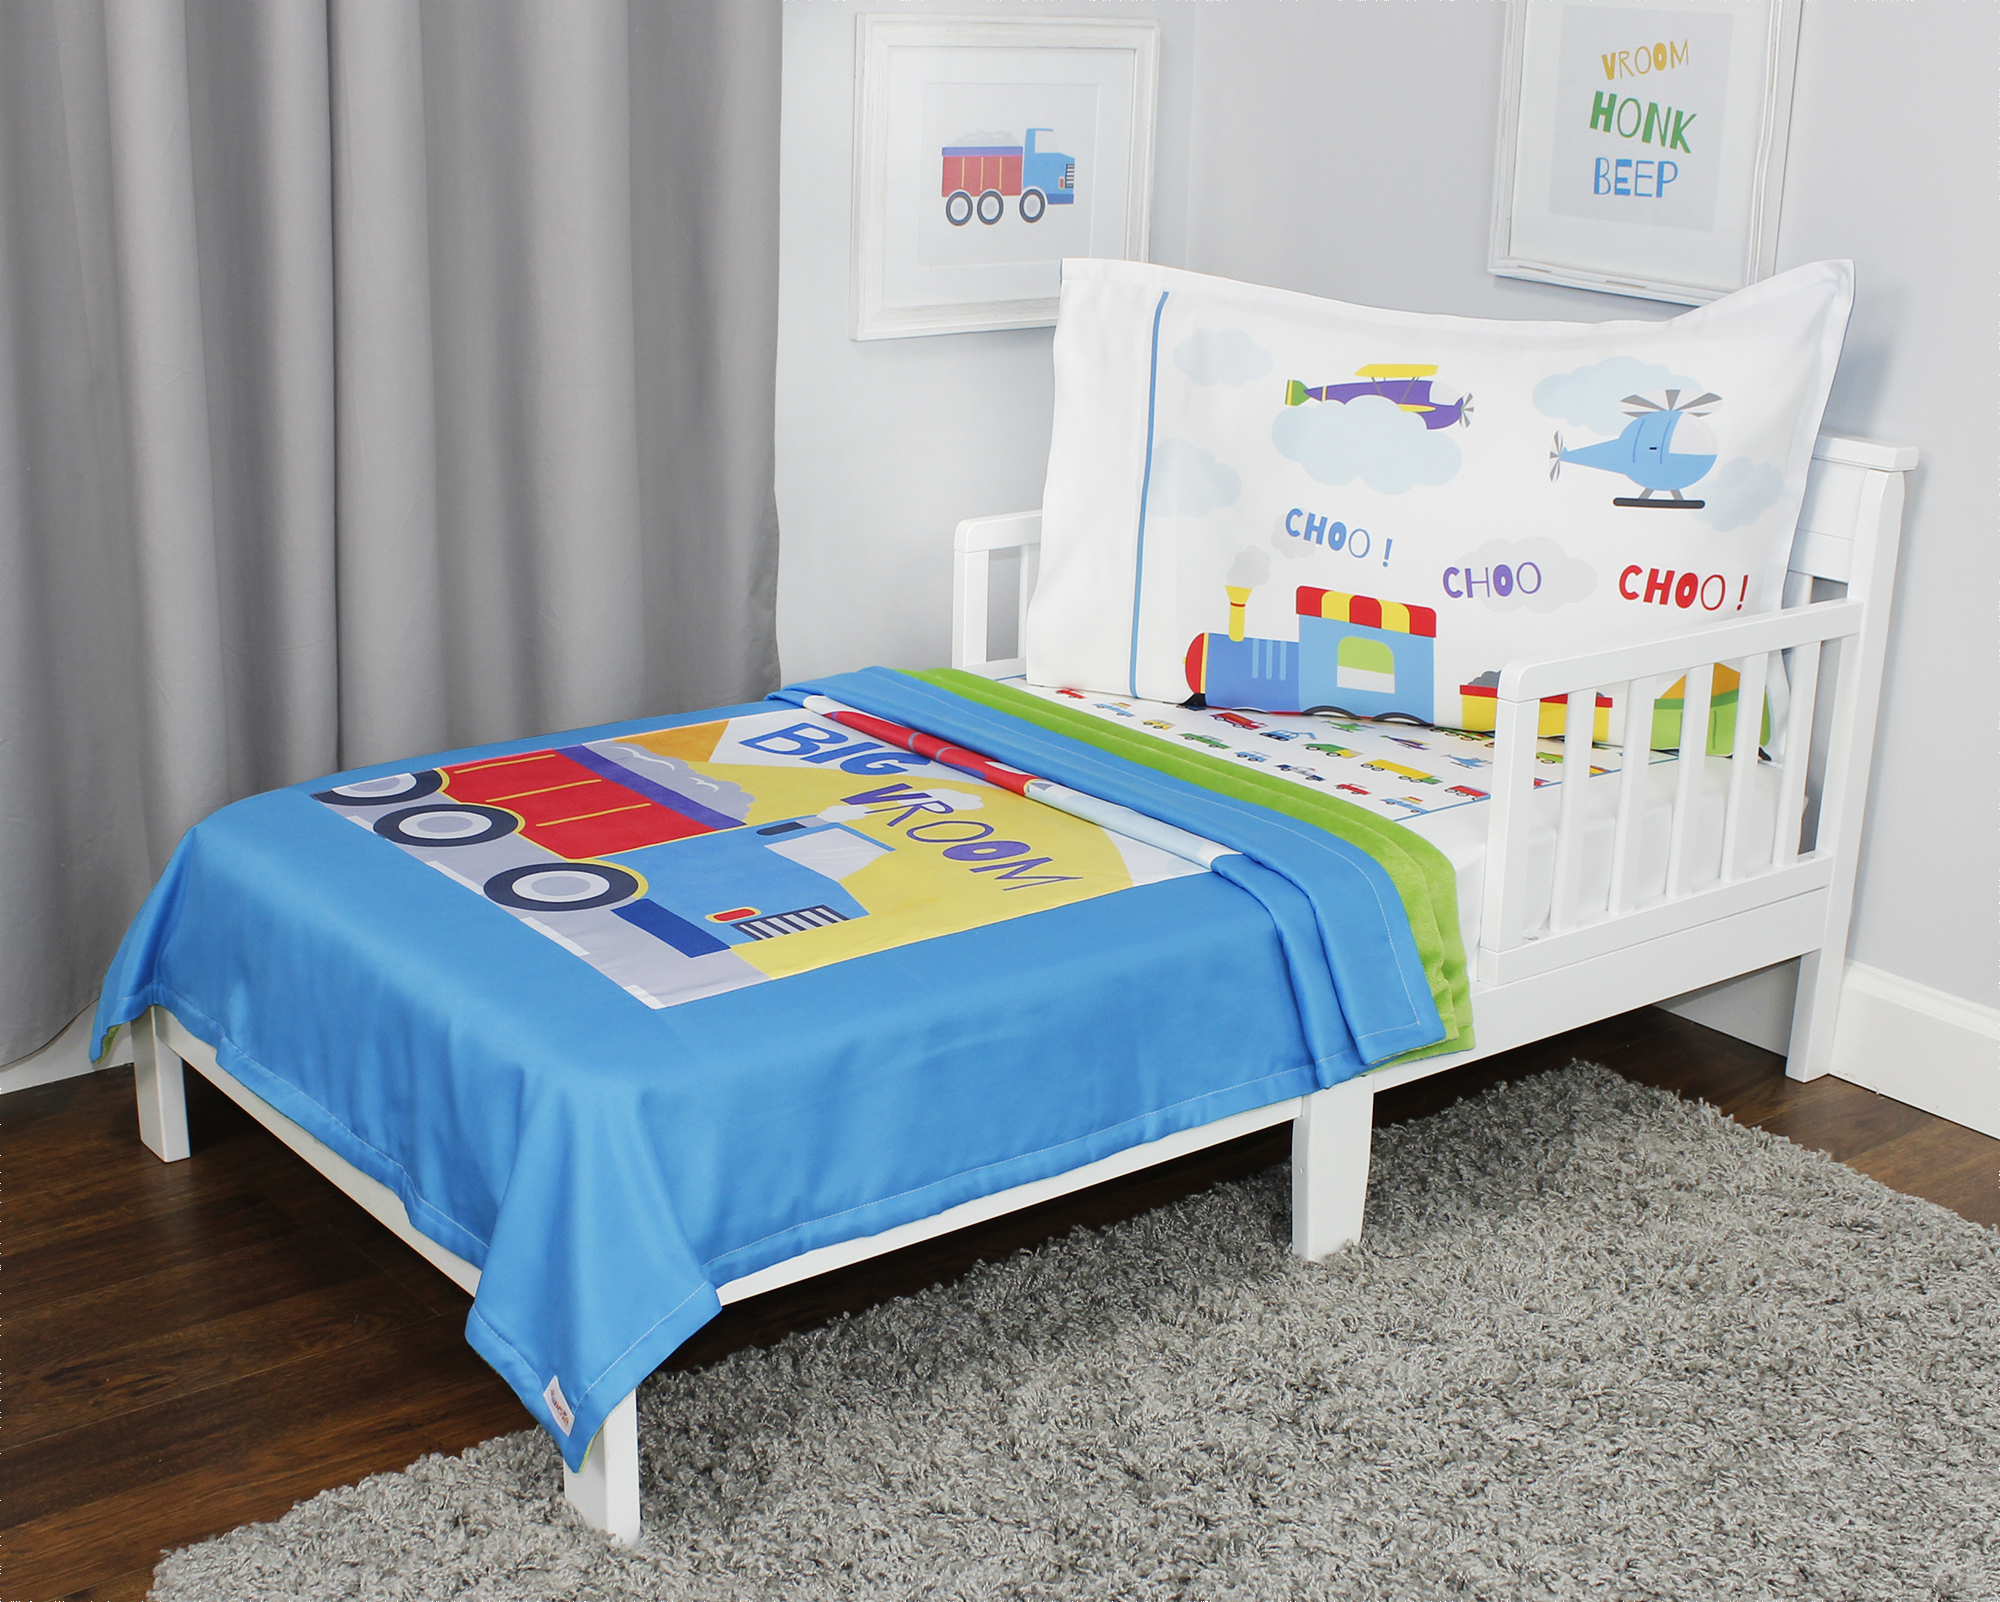 Cars Planes And Trains Toddler Bedding Set - 3pc Transportation Blanket And Fitted Sheet